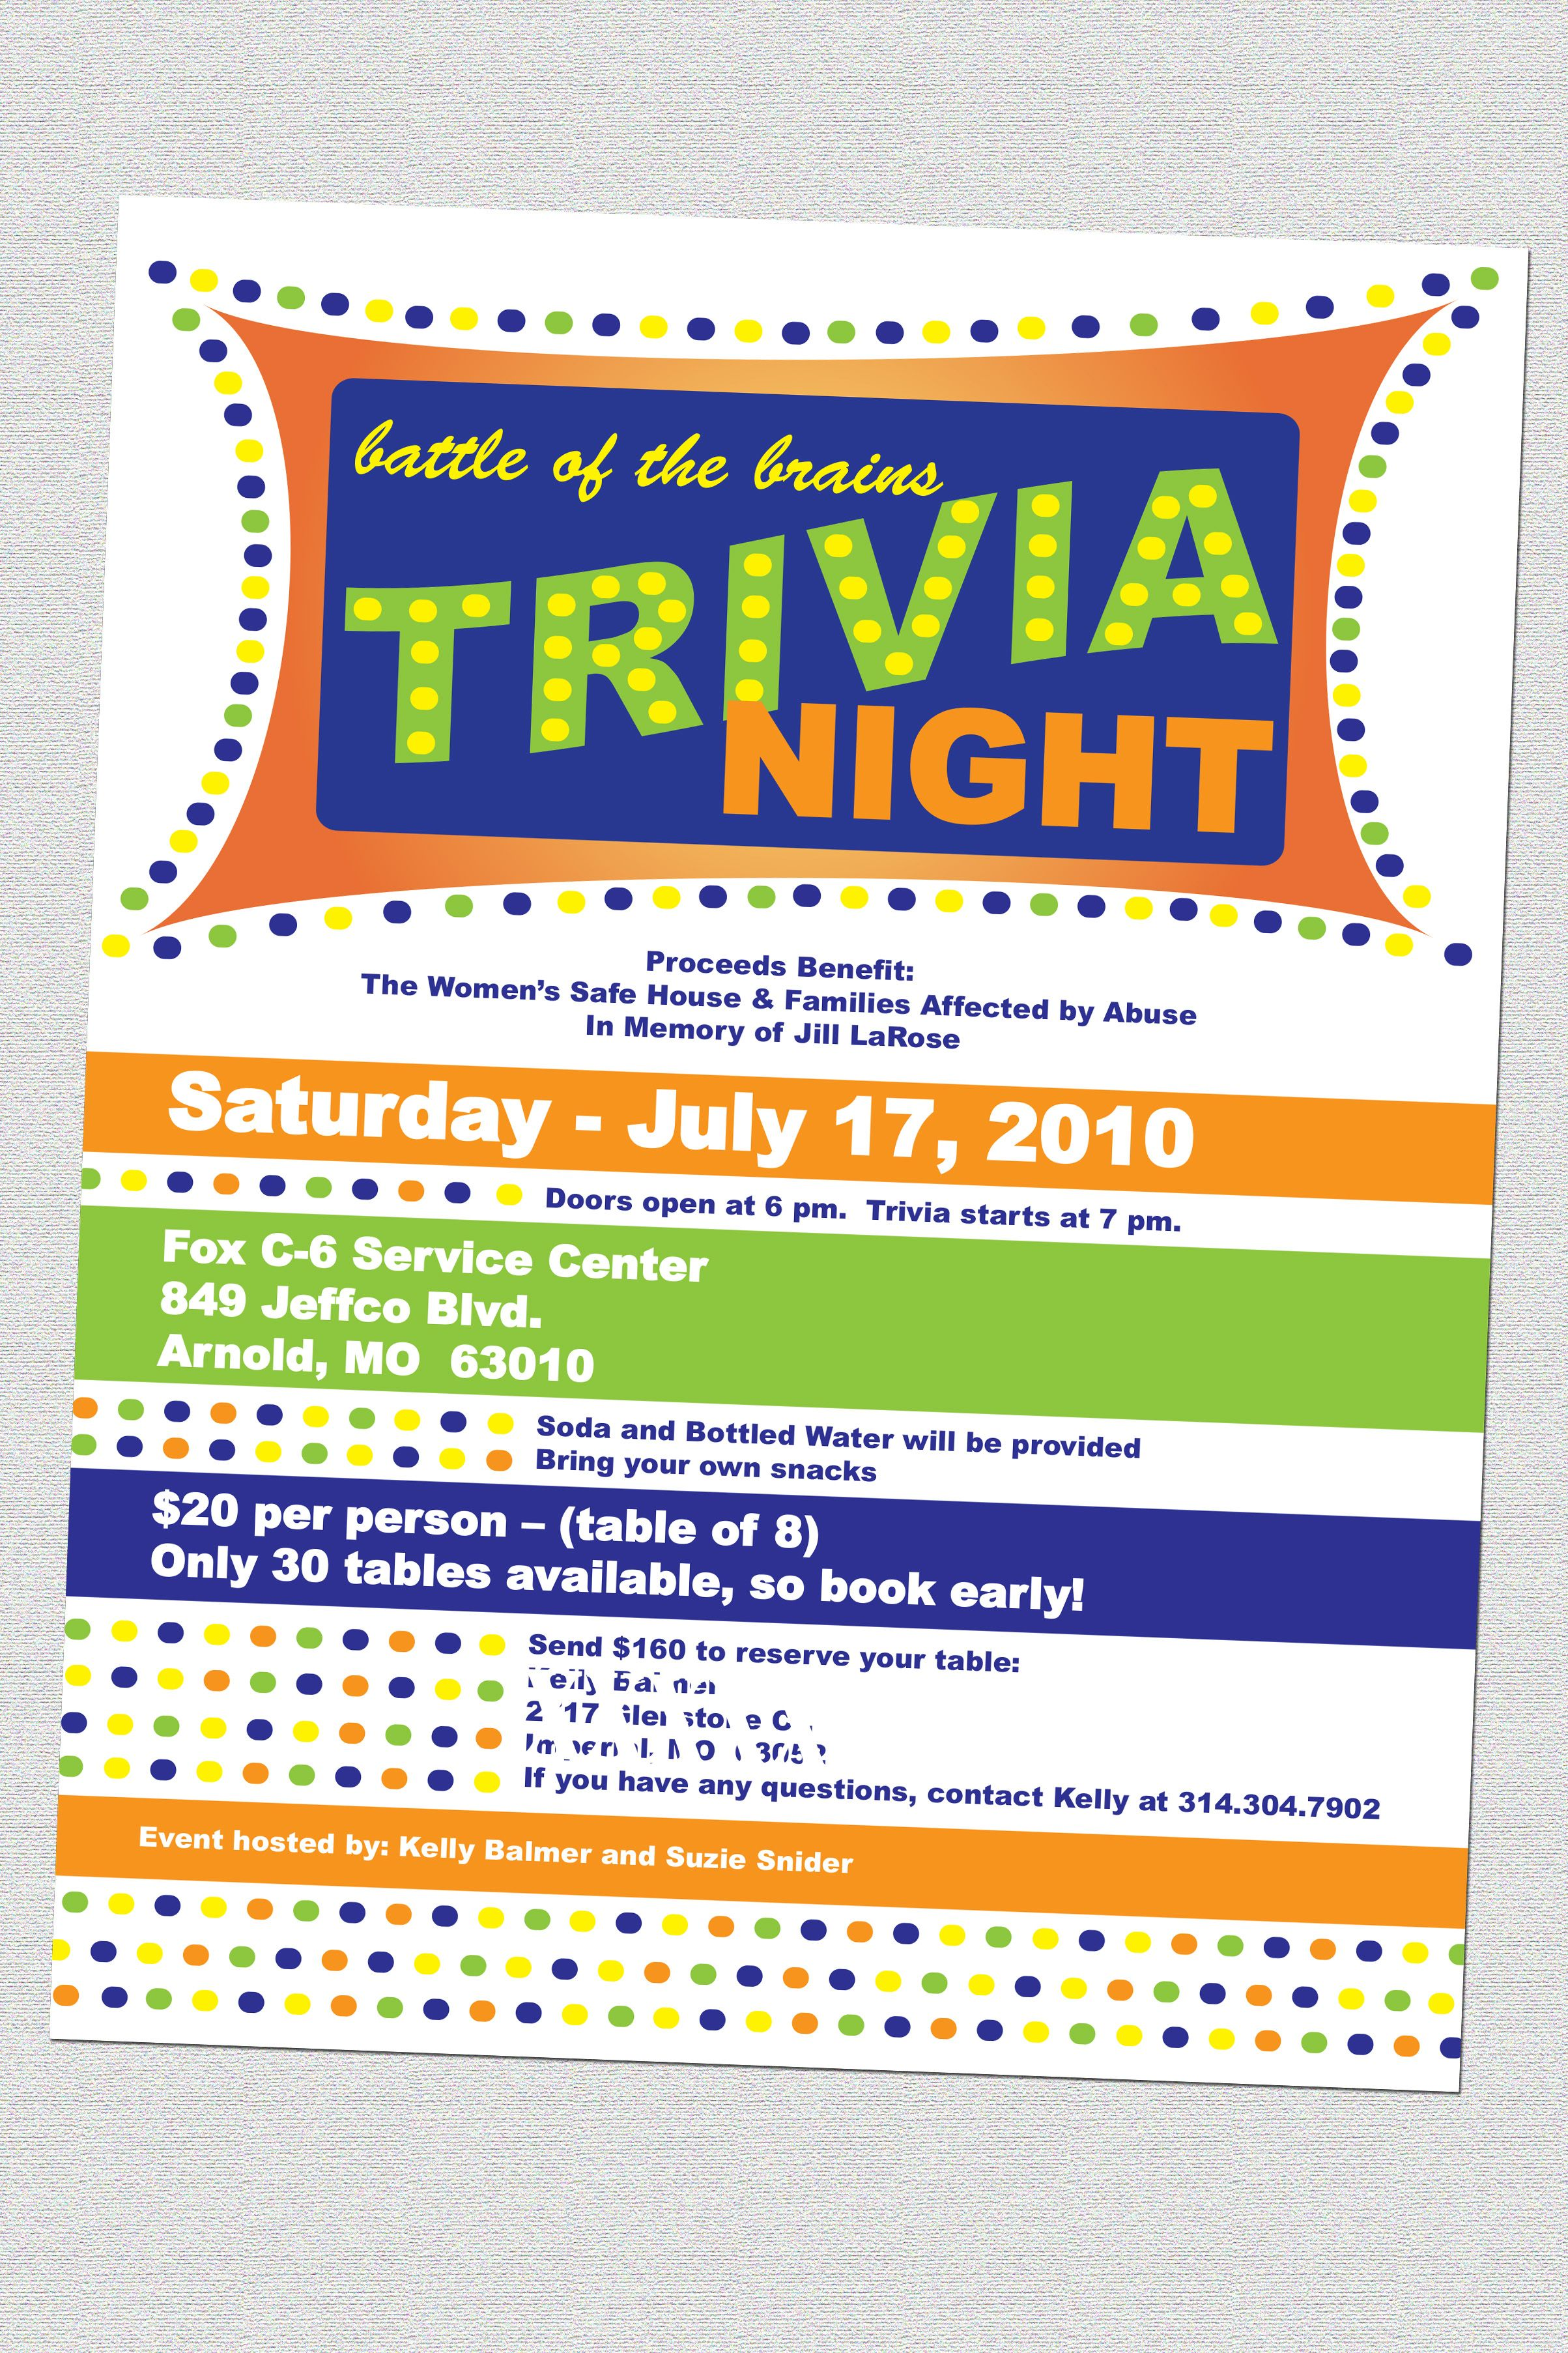 trivia night flyers designs and photography by kristin hudson trivia night flyers